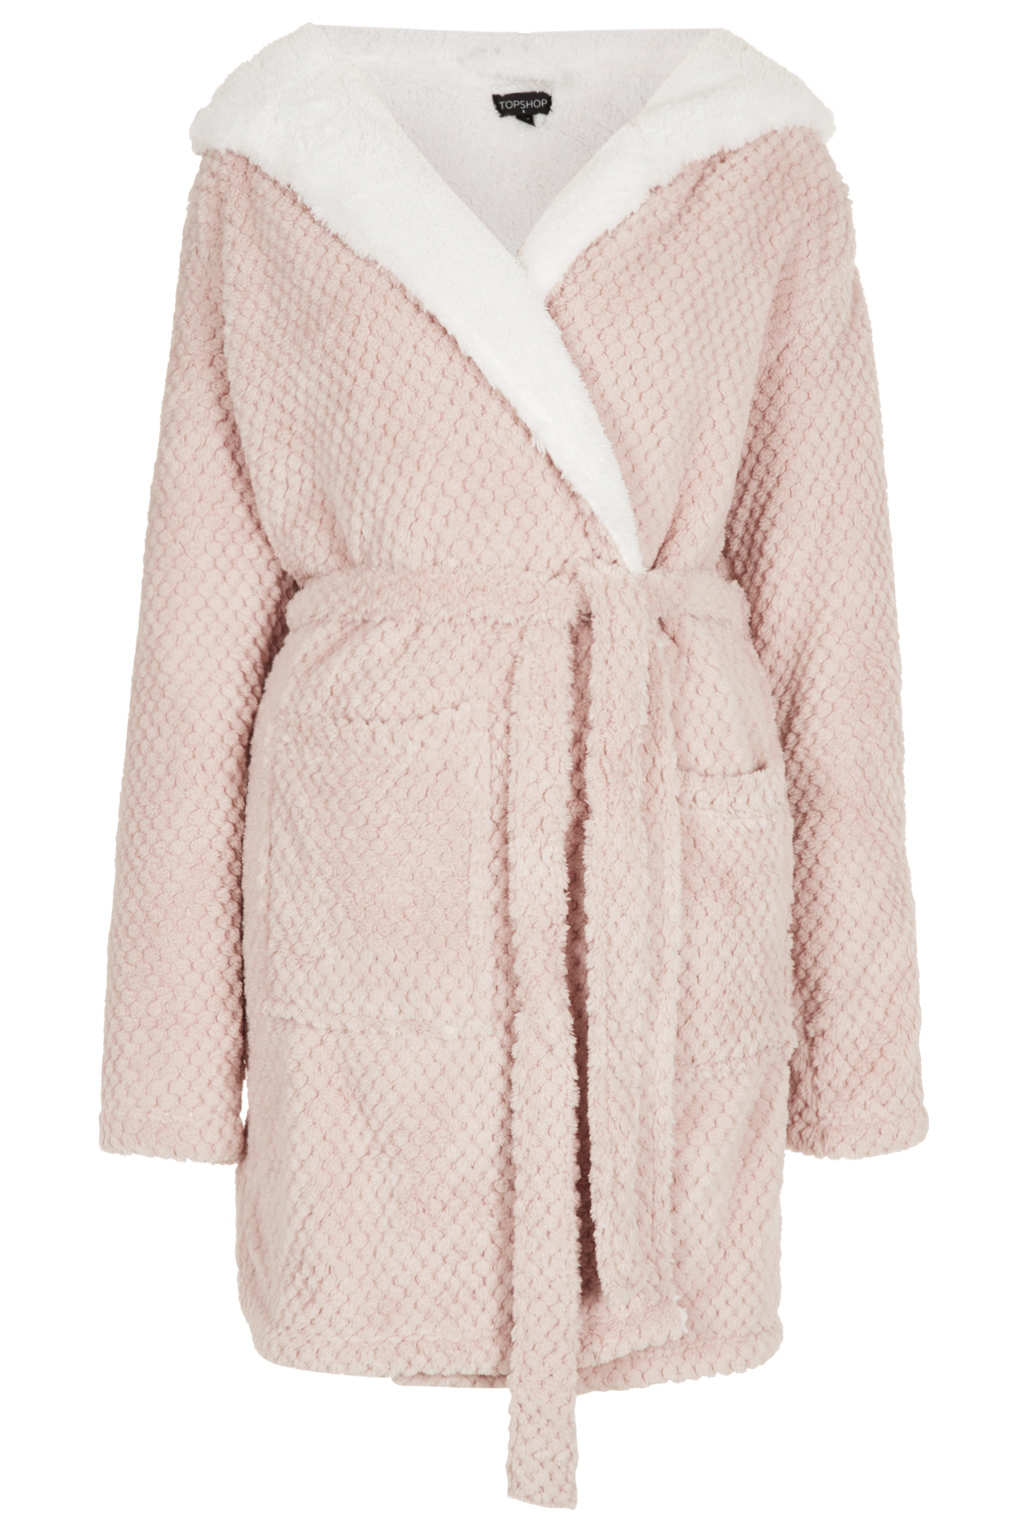 Topshop Teddy Robe in Natural - Lyst